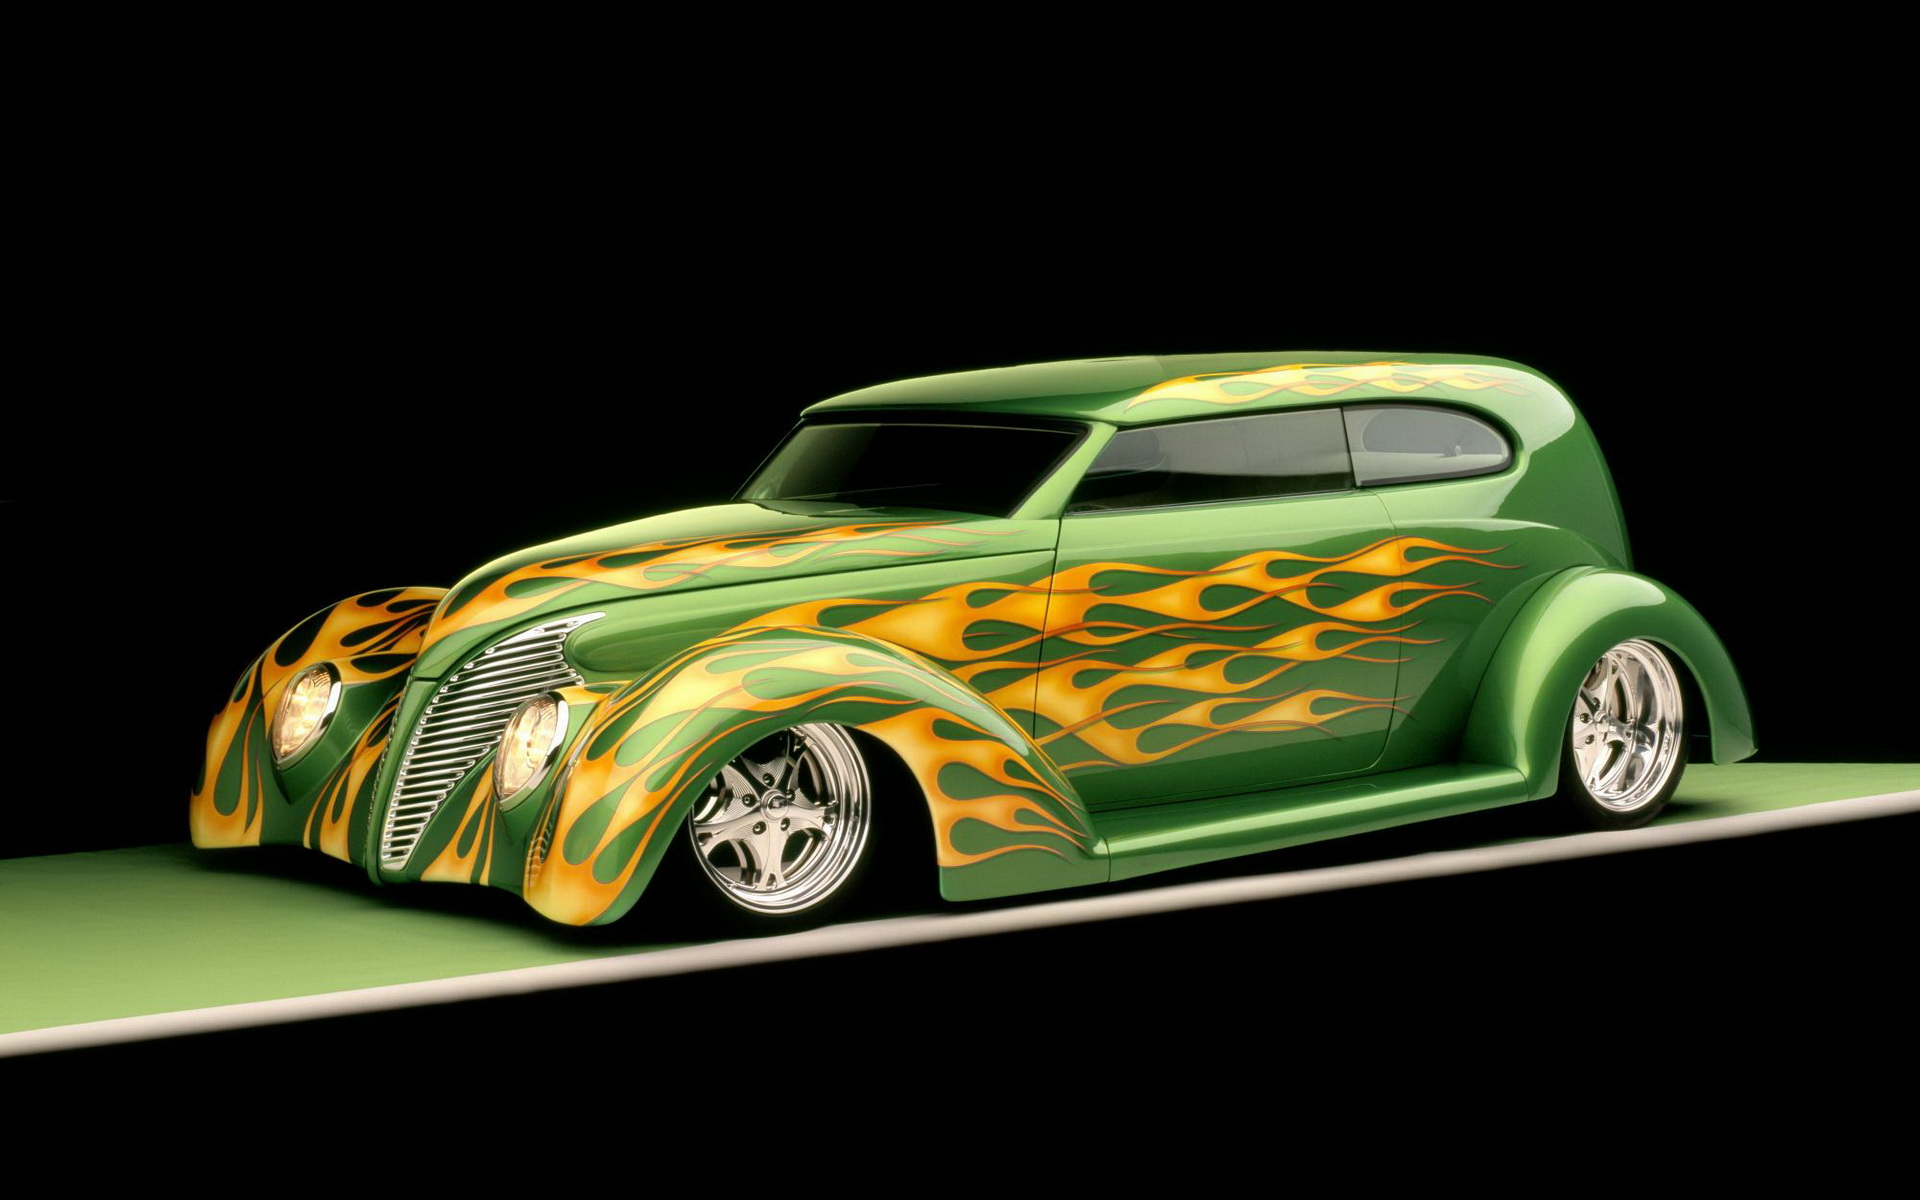 Green Car From Cars: 1939 Ford Sedan Wallpaper And Background Image